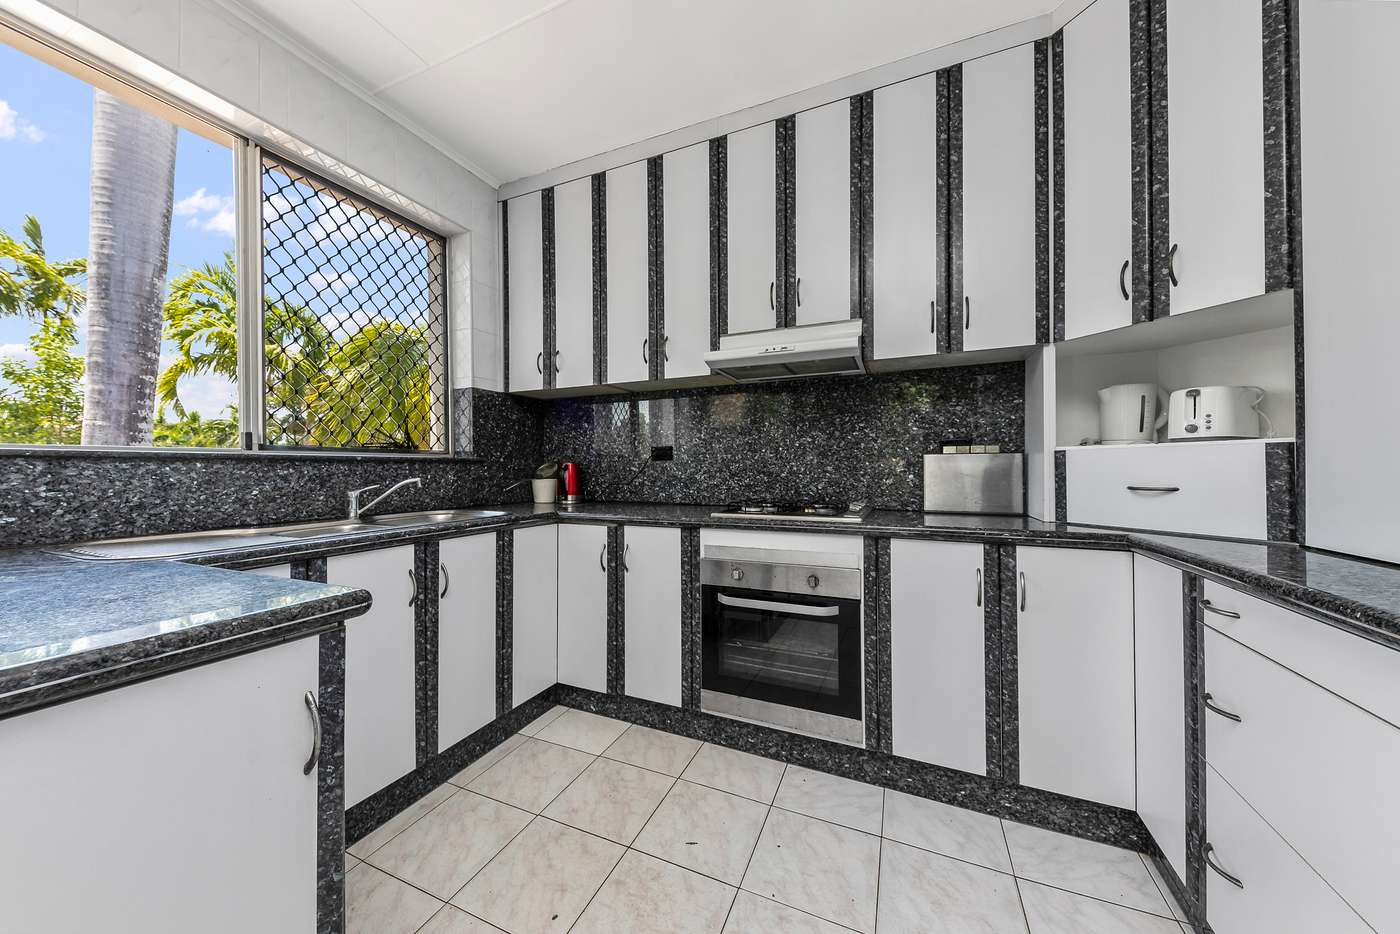 Sixth view of Homely house listing, 1 Godfrey Court, Larrakeyah NT 820